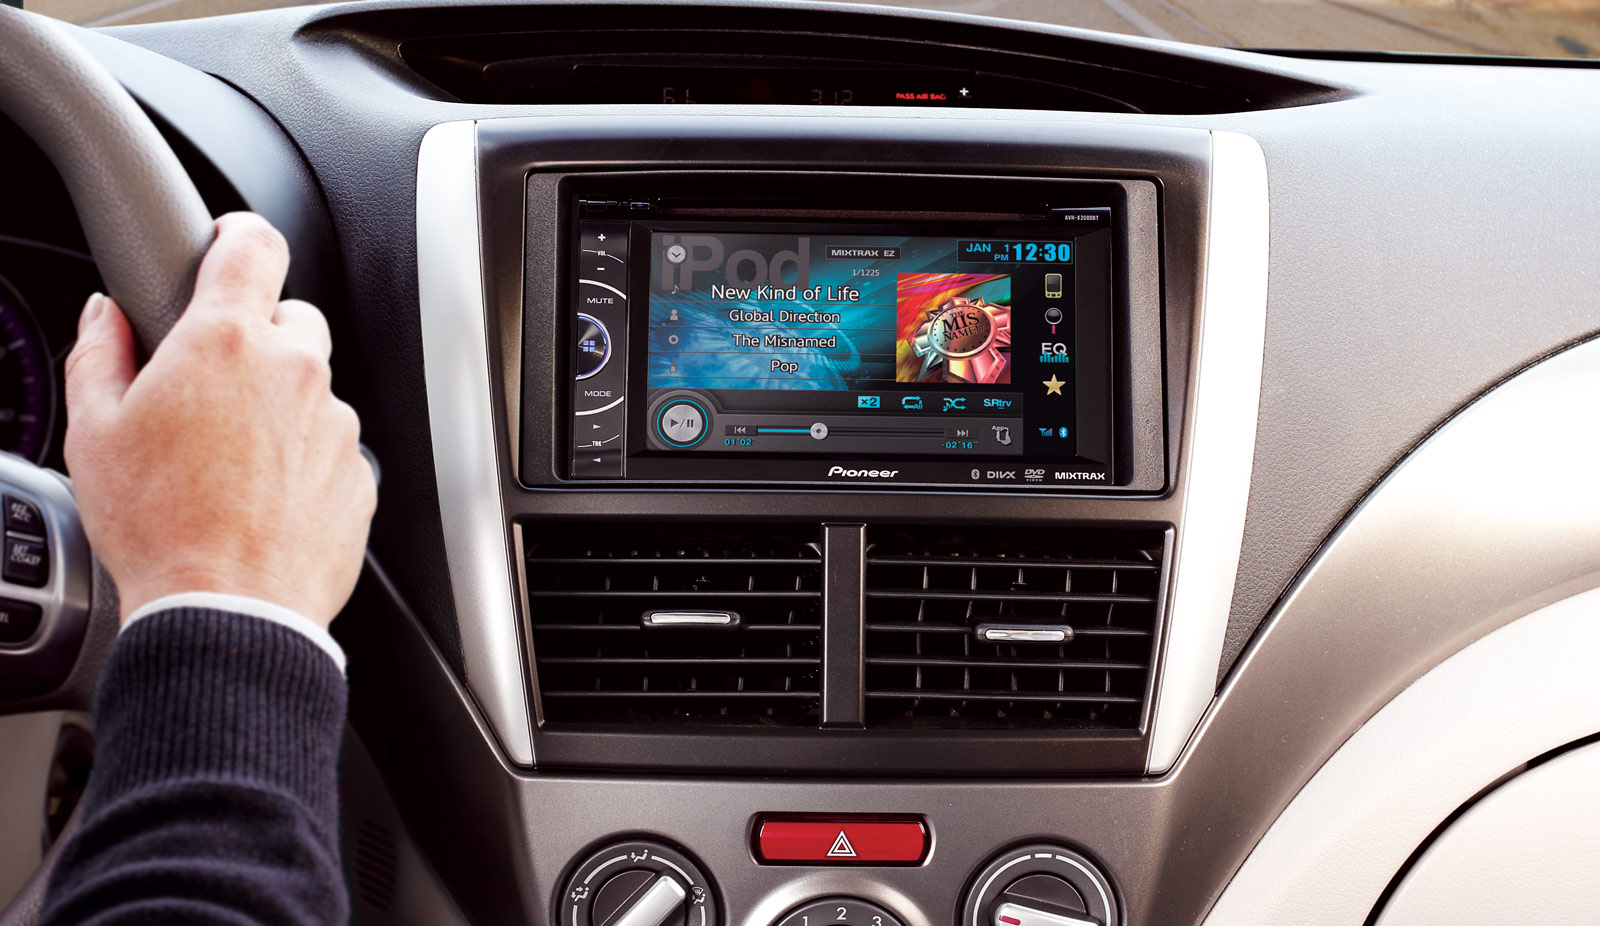 Car Stereo Buying Guide: Tips for Choosing a New Stereo for Your Car